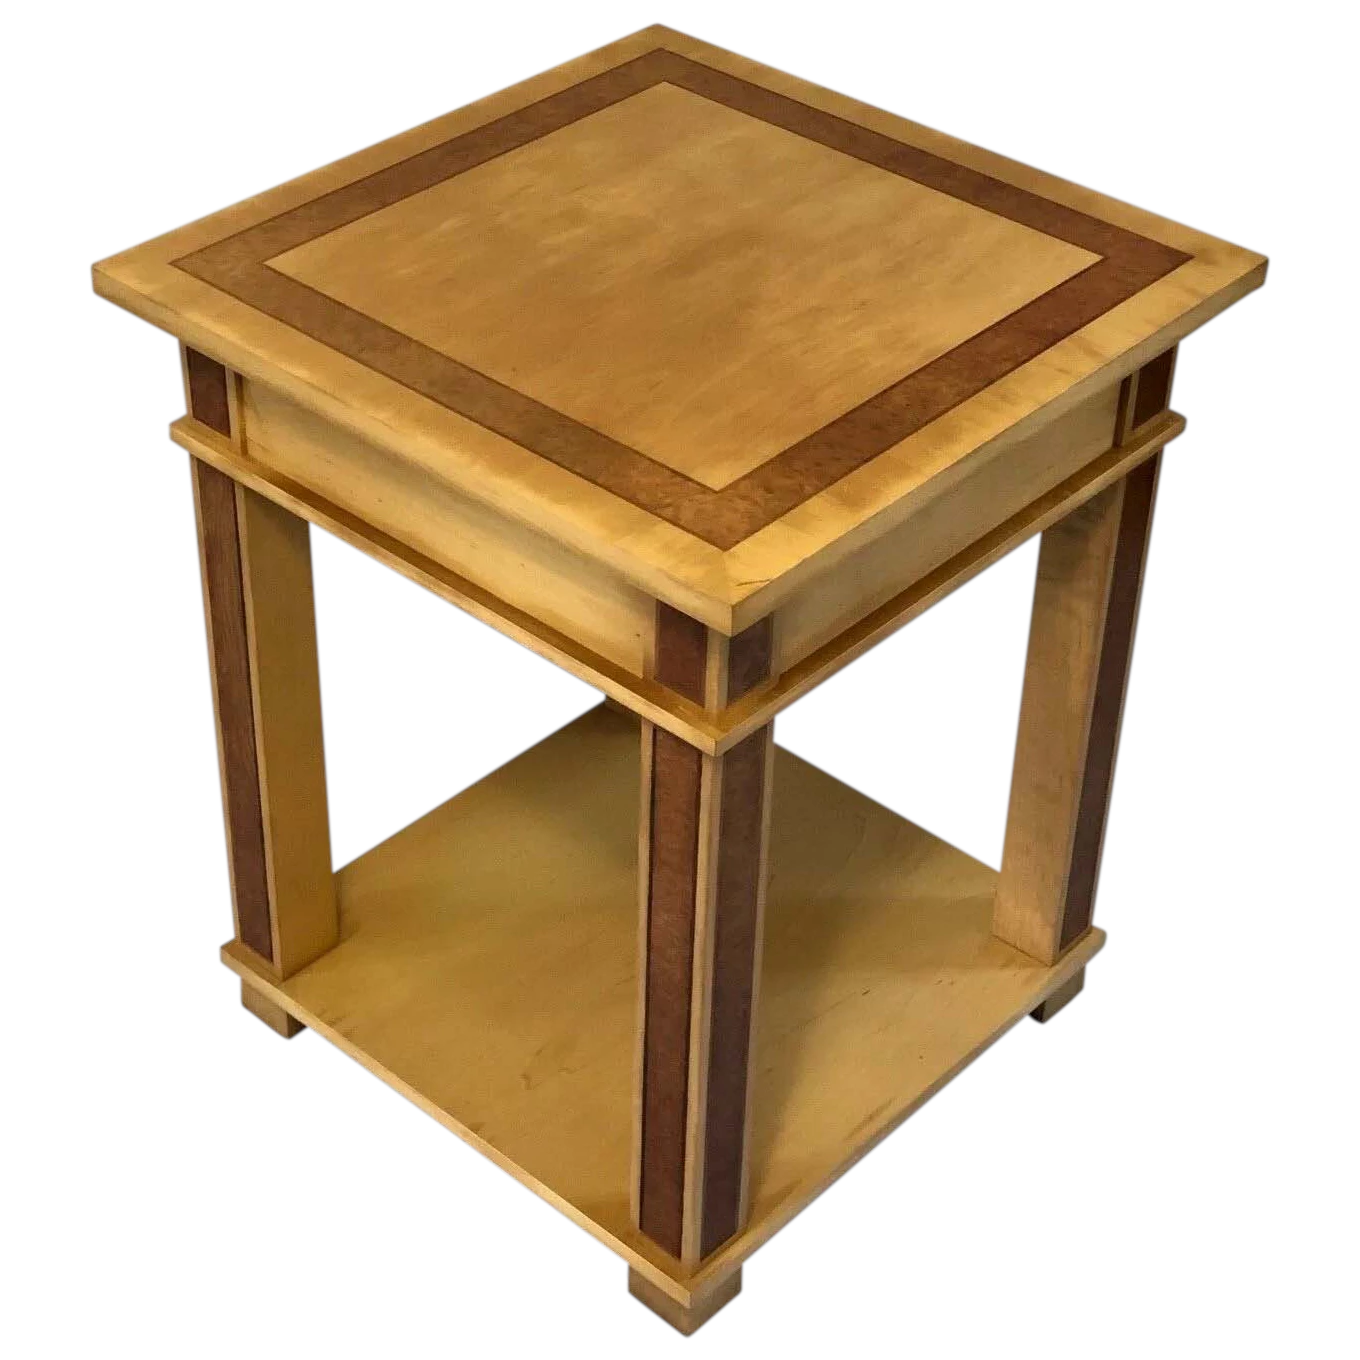 Art Deco Style Vintage 20th Century French Blonde Wood Side Table